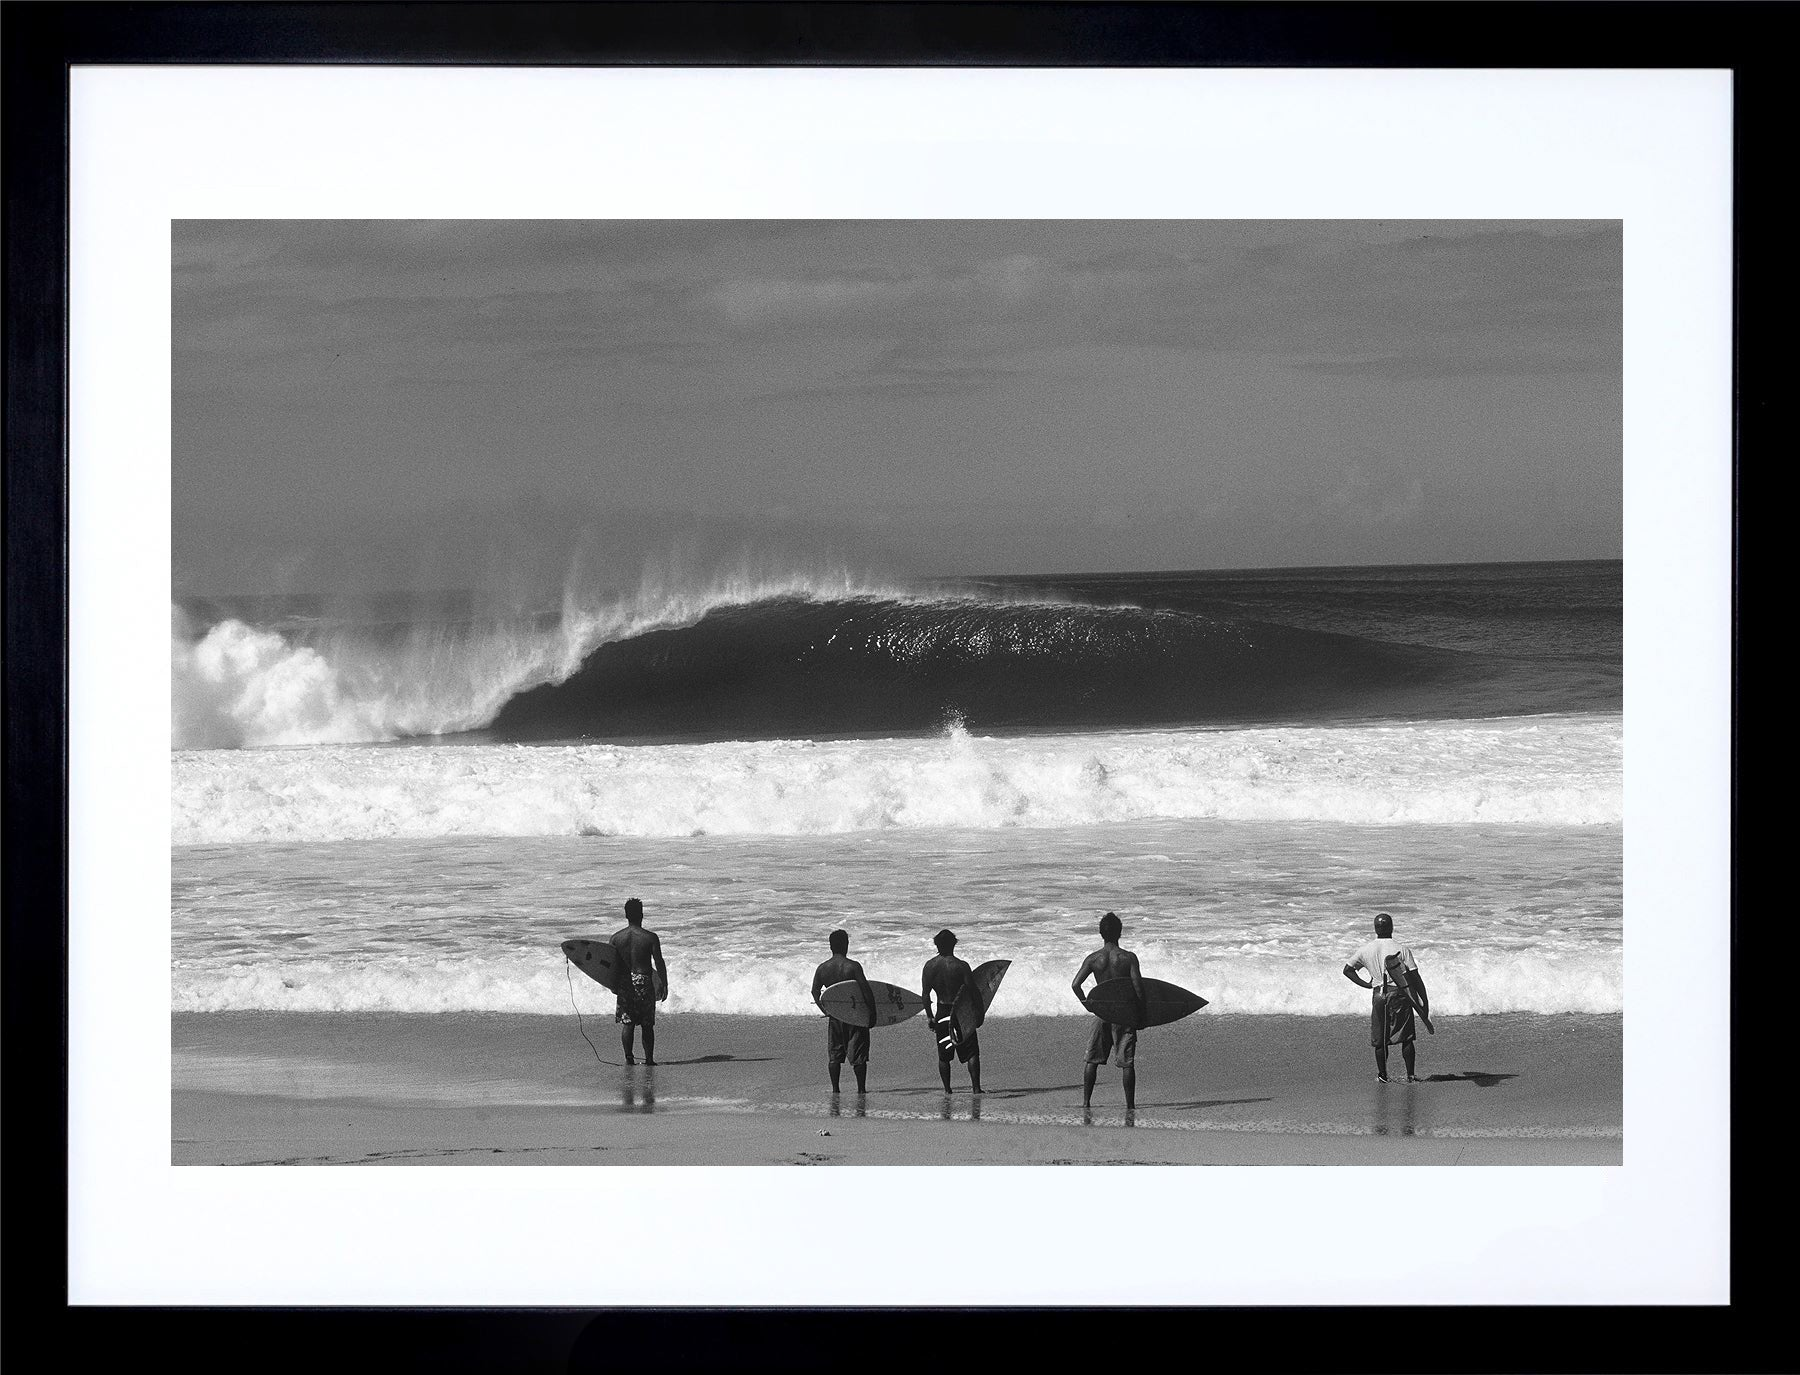 Standing Room Only gallery quality surfing prints of an empty wave at Pipeline on the North Shore of Oahu with a row of surfers standing on the beach holding their surfboards.